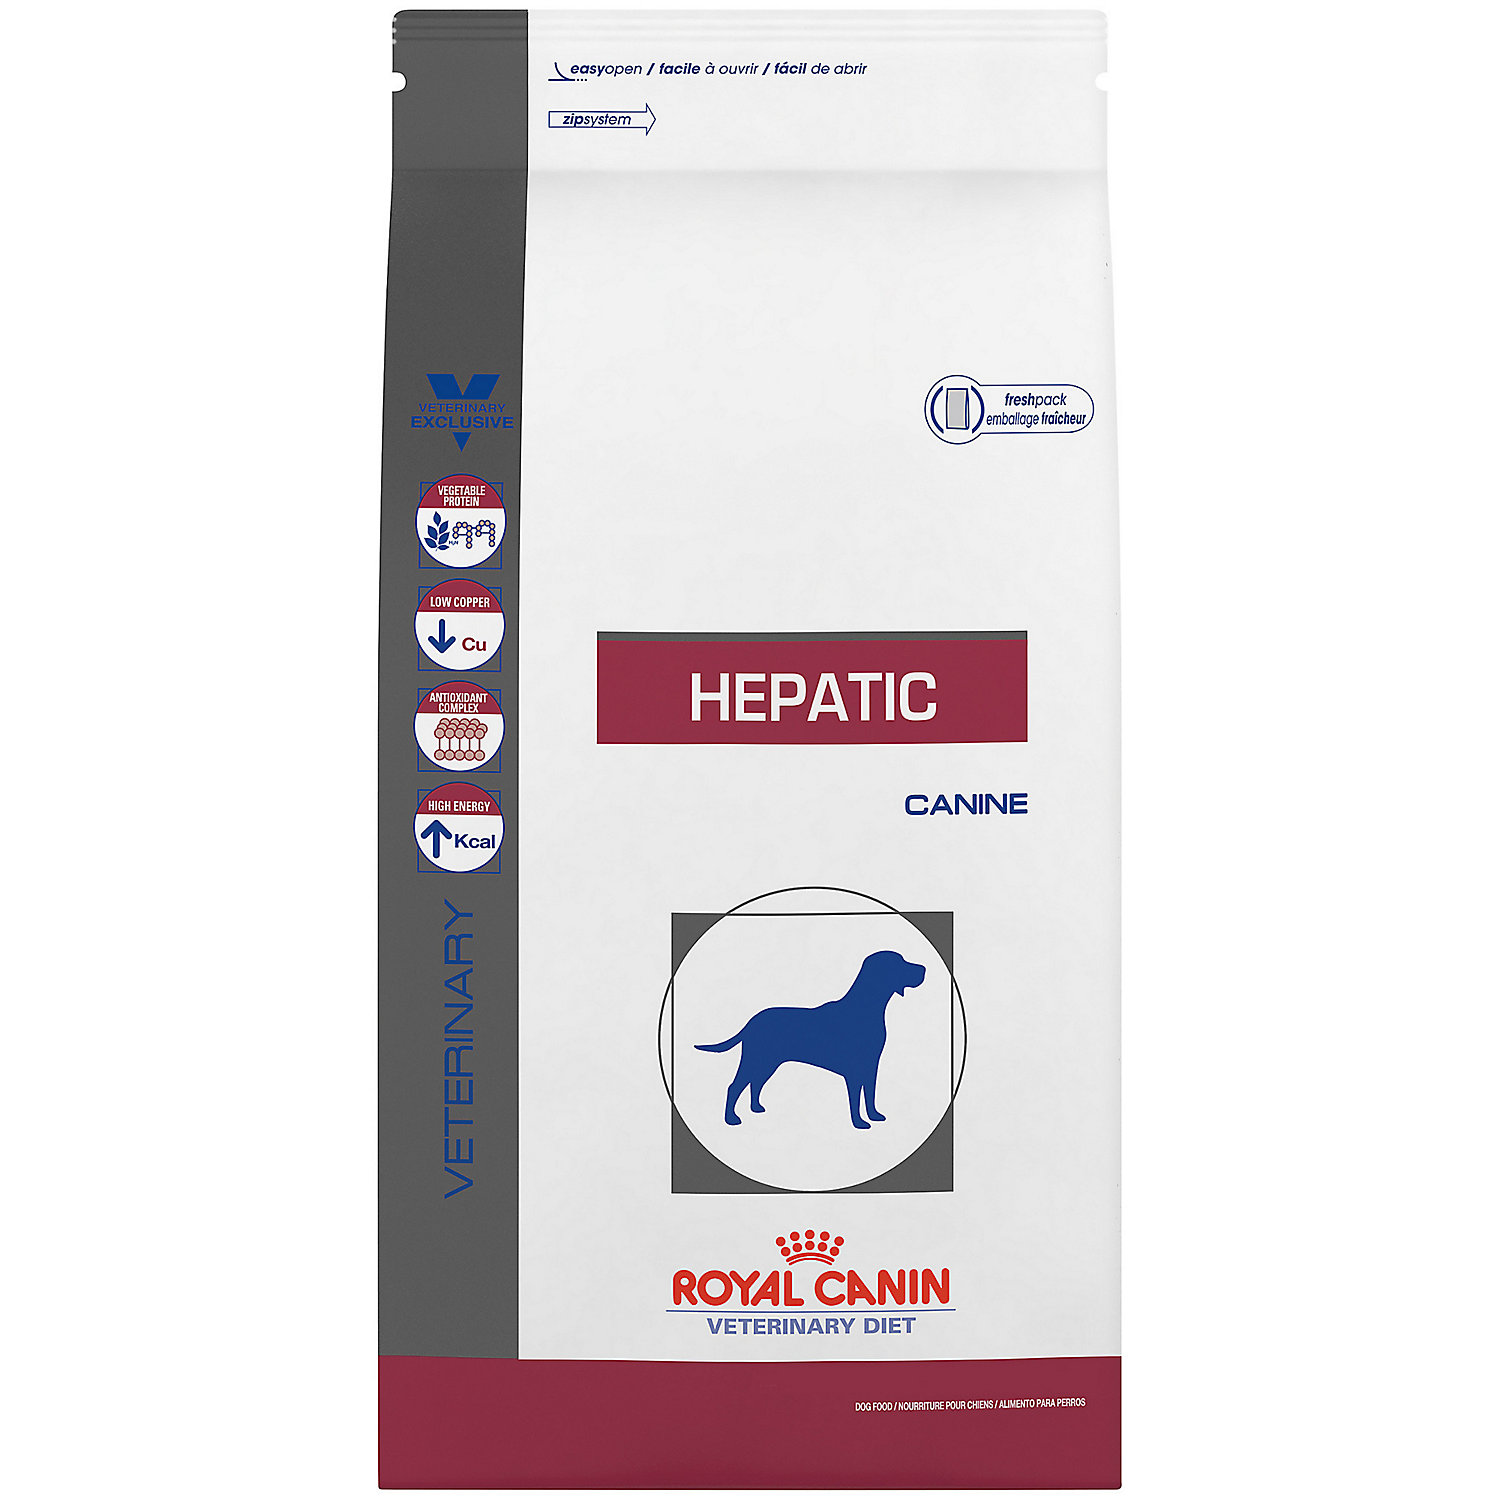 Image of Royal Canin Veterinary Diet Canine Hepatic Dry Dog Food